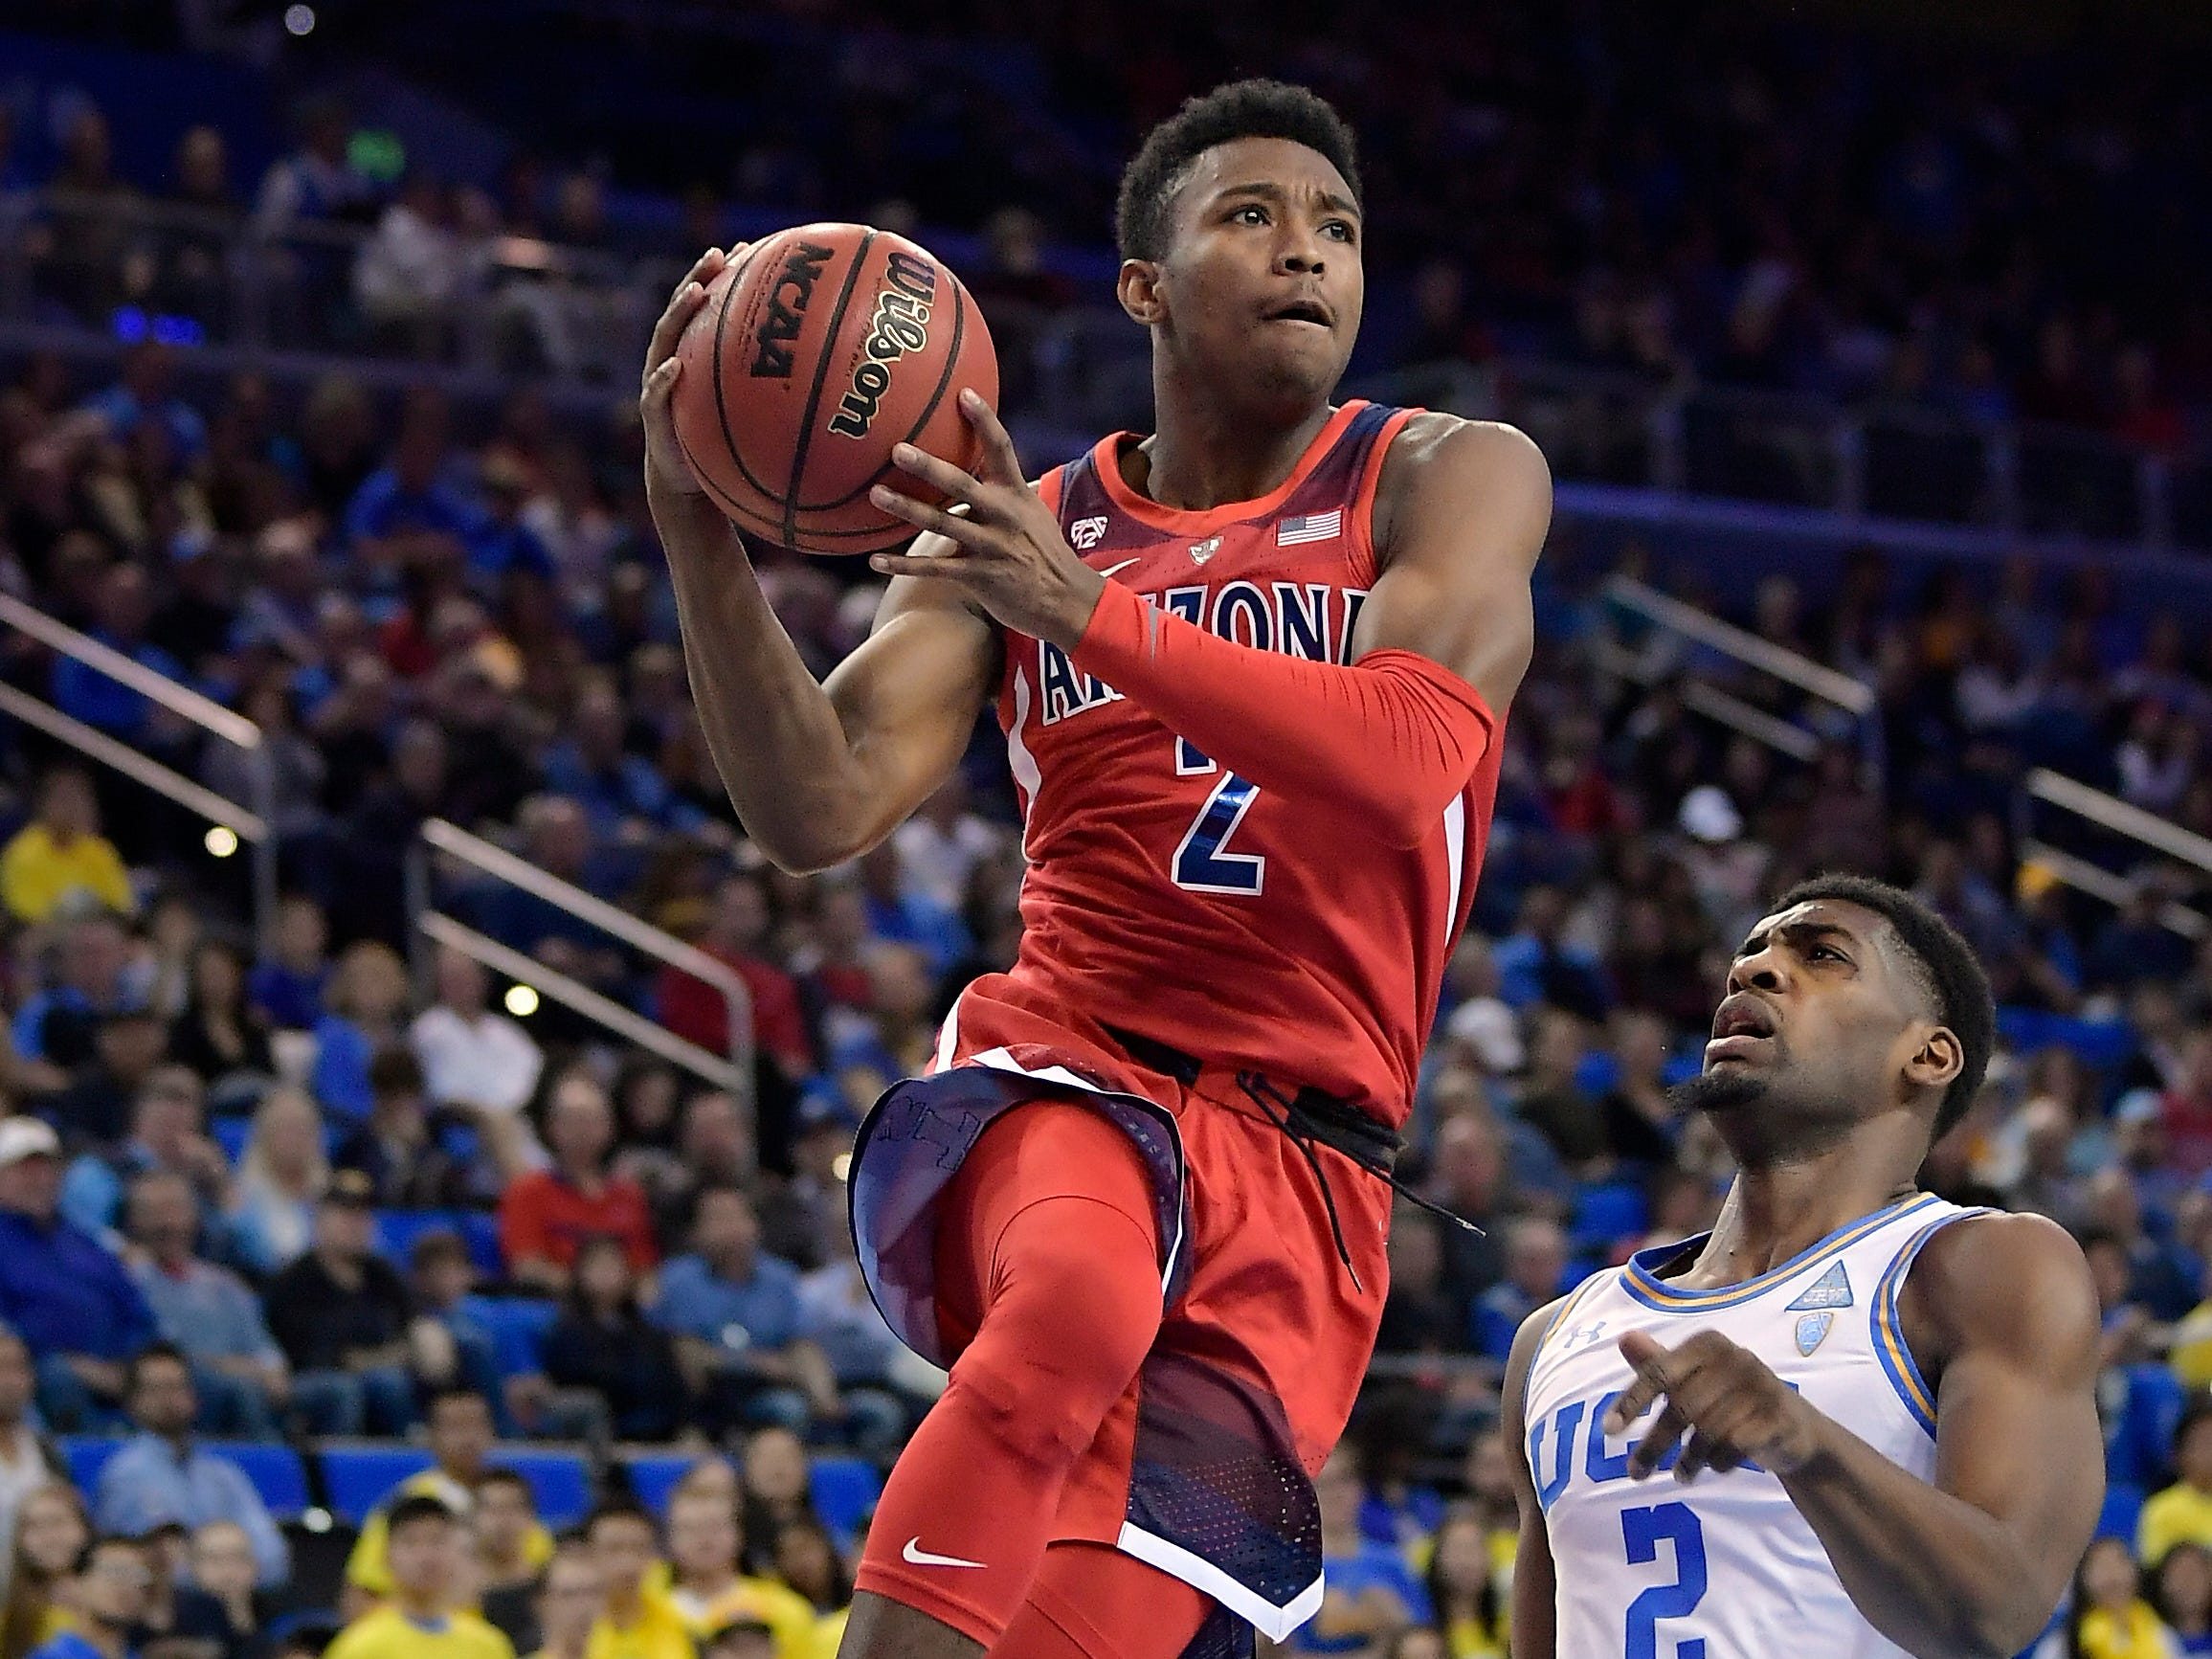 Arizona guard Brandon Williams drives as UCLA forward Cody Riley defends during the first half of an NCAA college basketball game Saturday, Jan. 26, 2019, in Los Angeles.